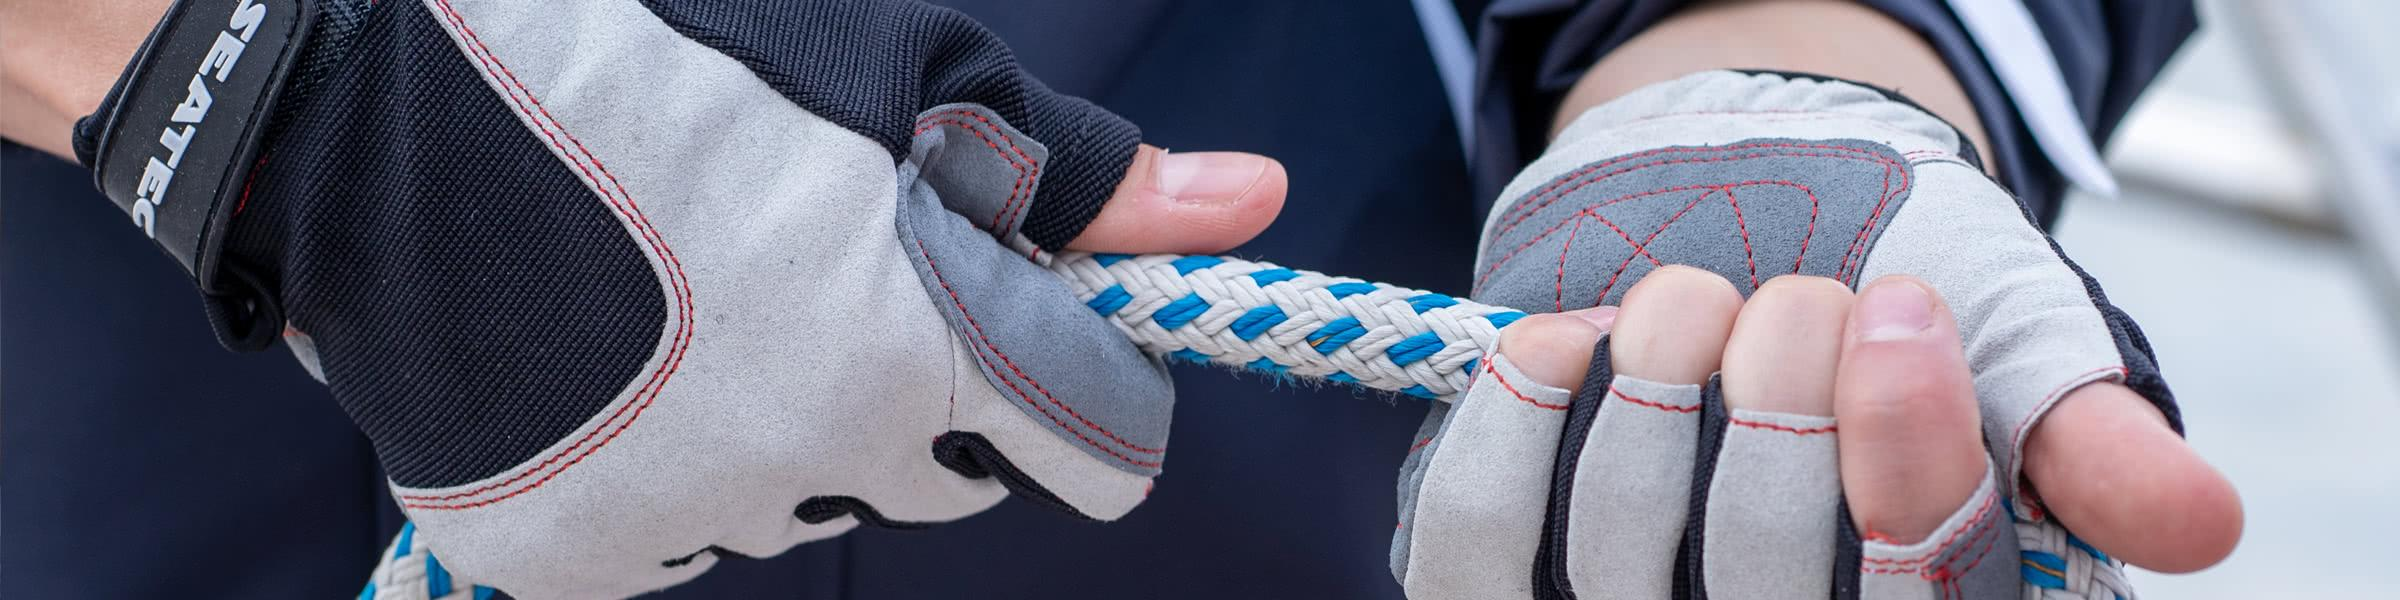 Keep a firm grip with SEATEC gloves